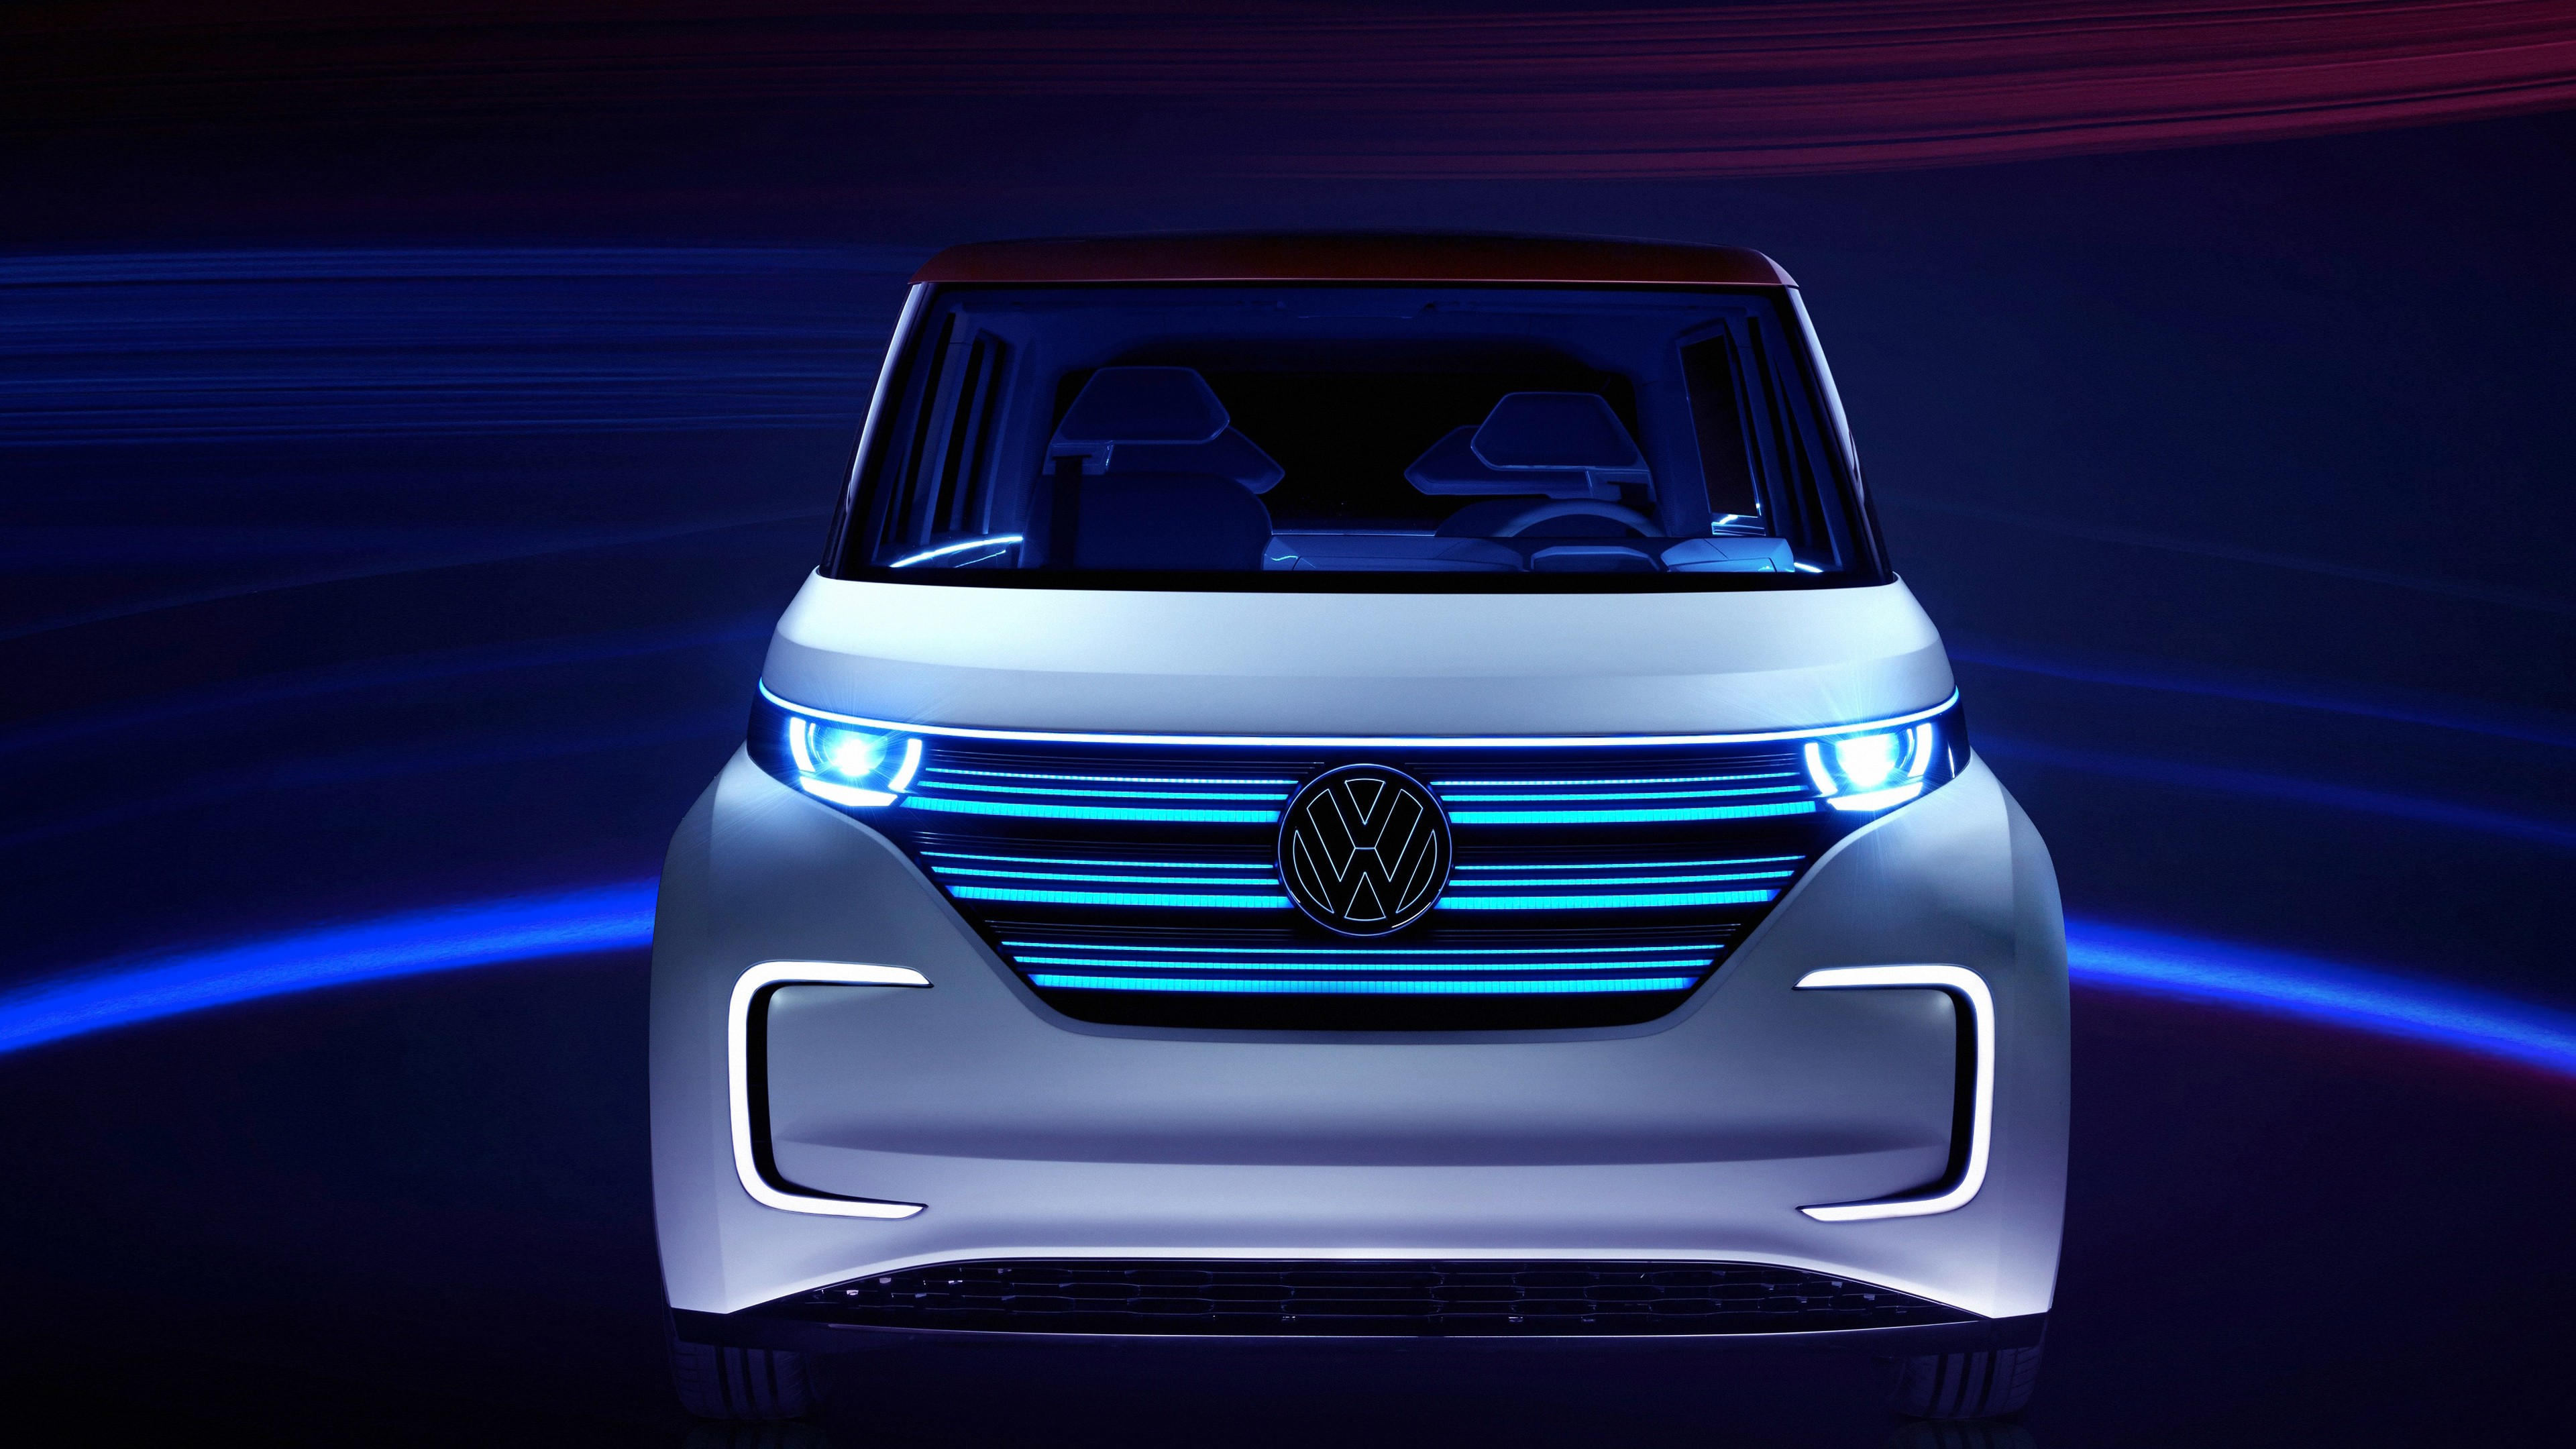 2016 Volkswagen BUDD E Electric Car Wallpaper